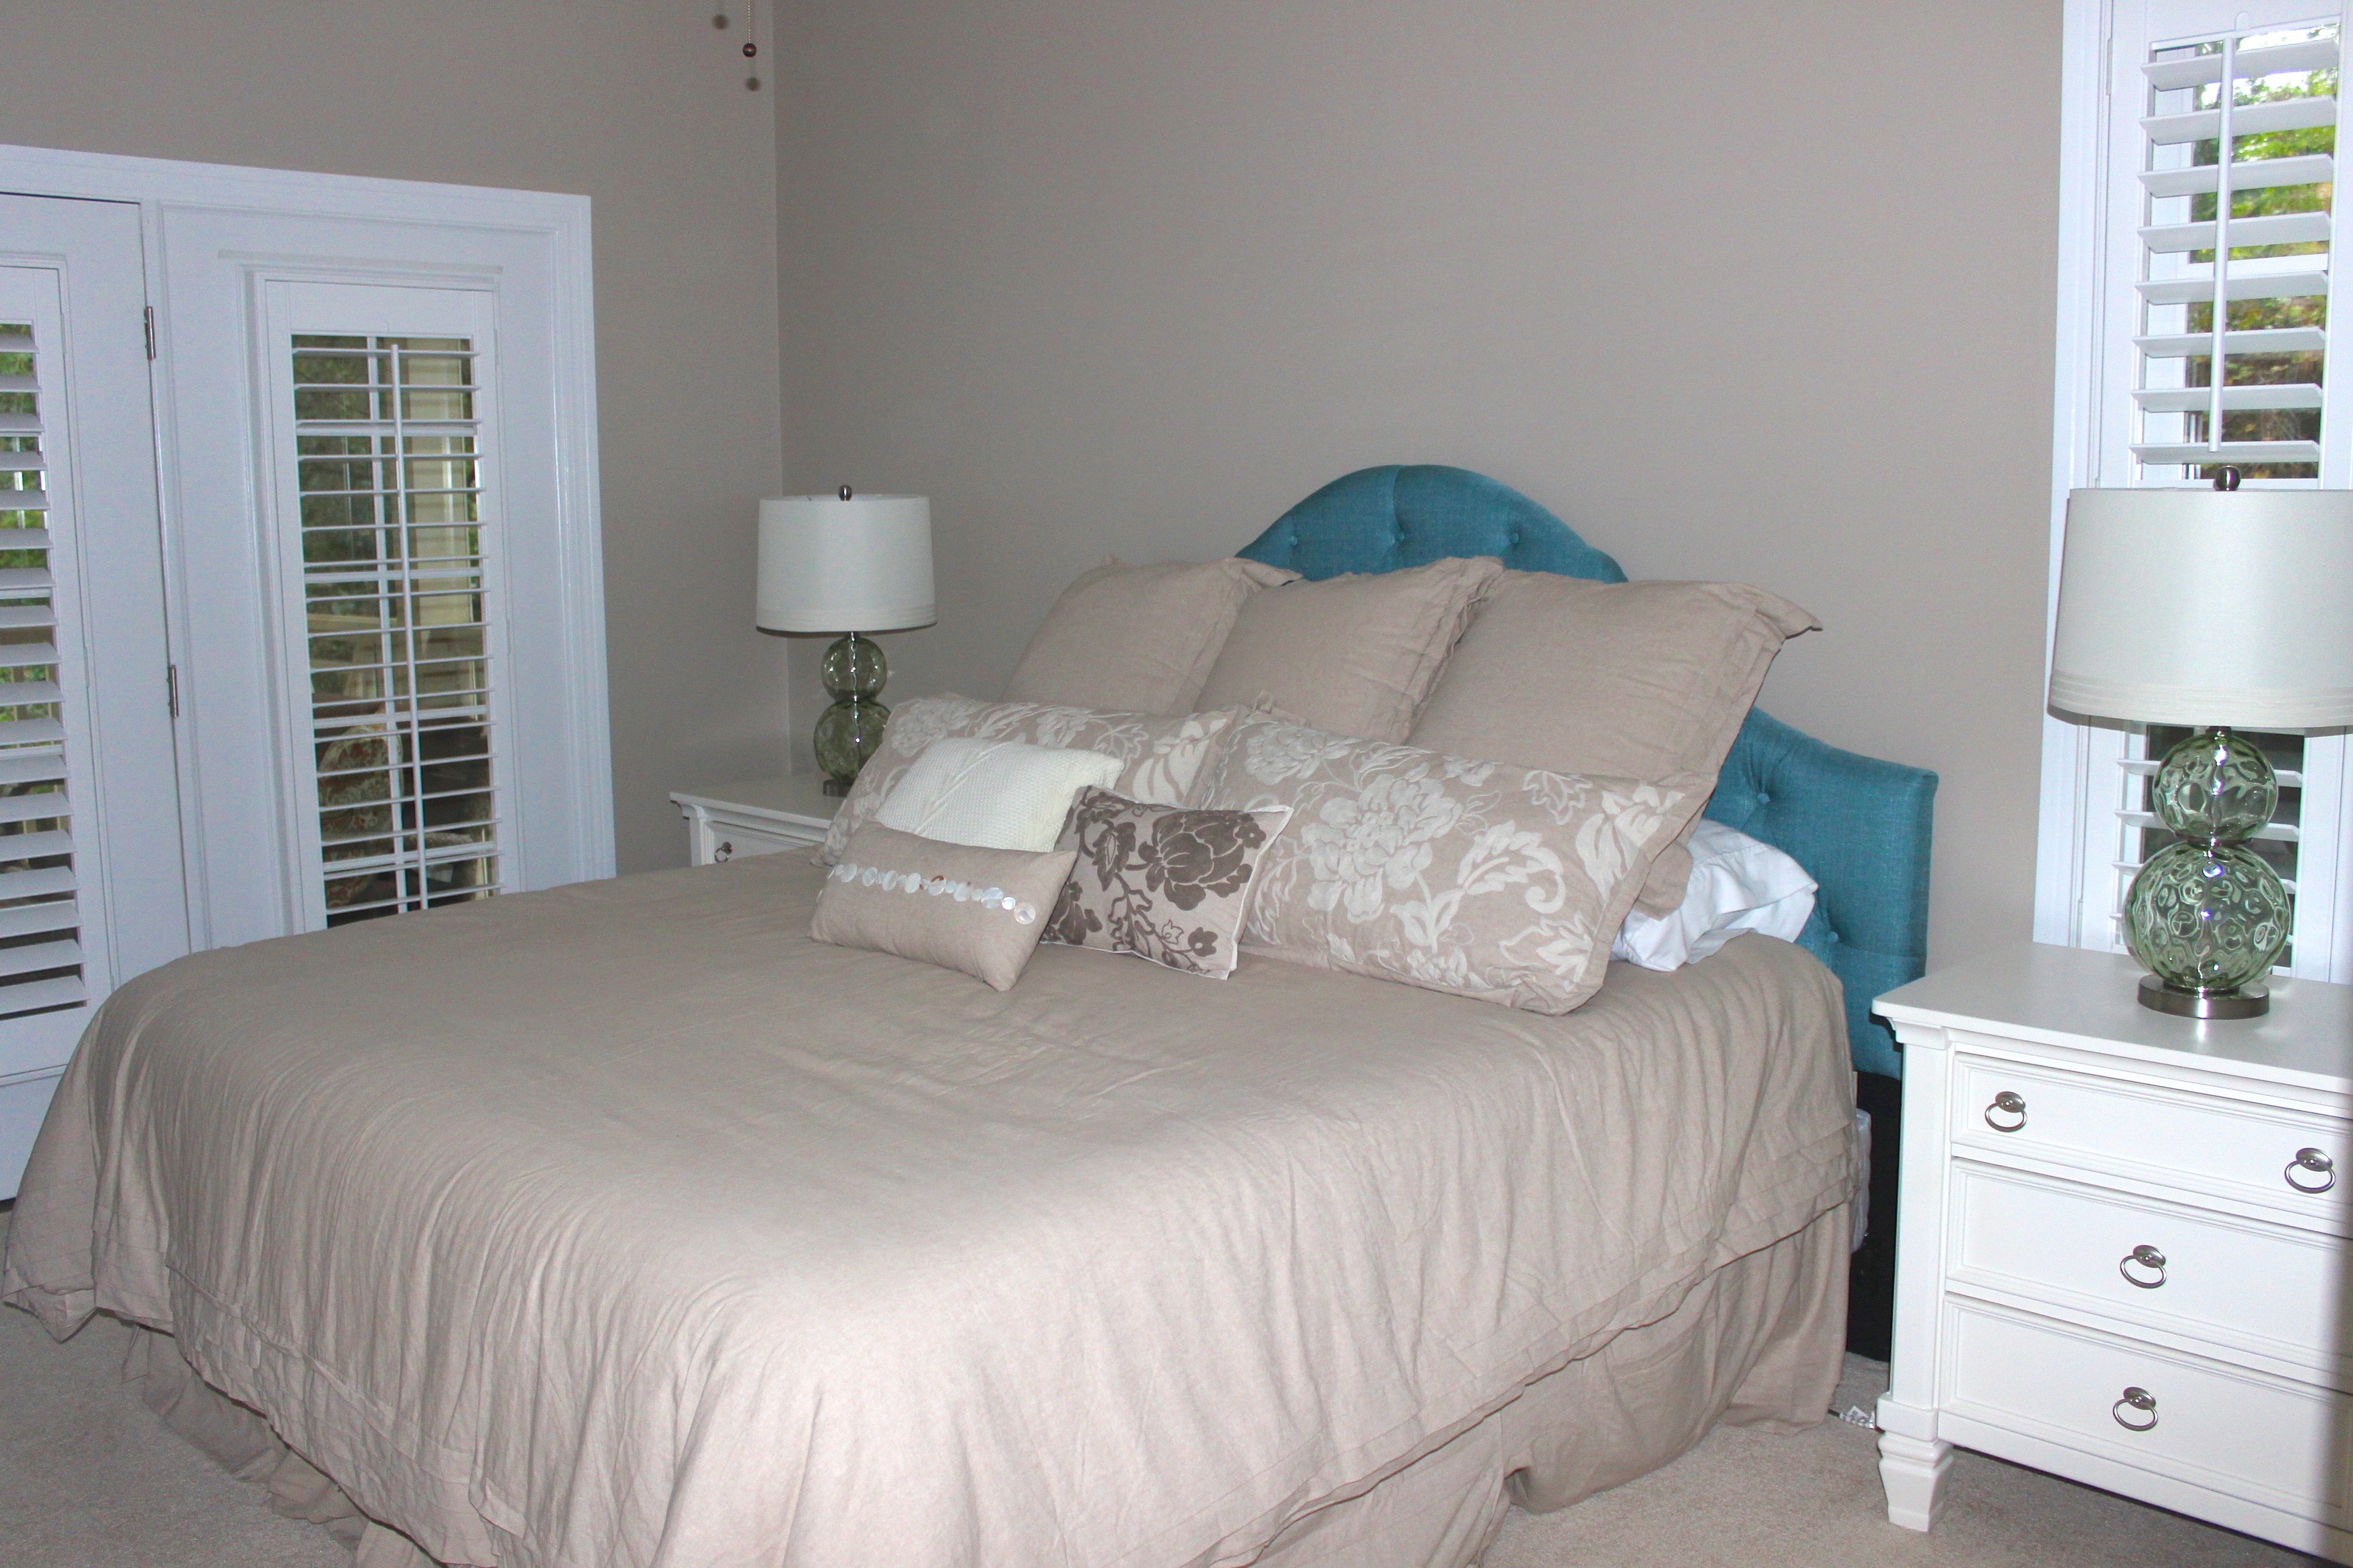 The 2nd bedroom (1st floor) has a king bed.